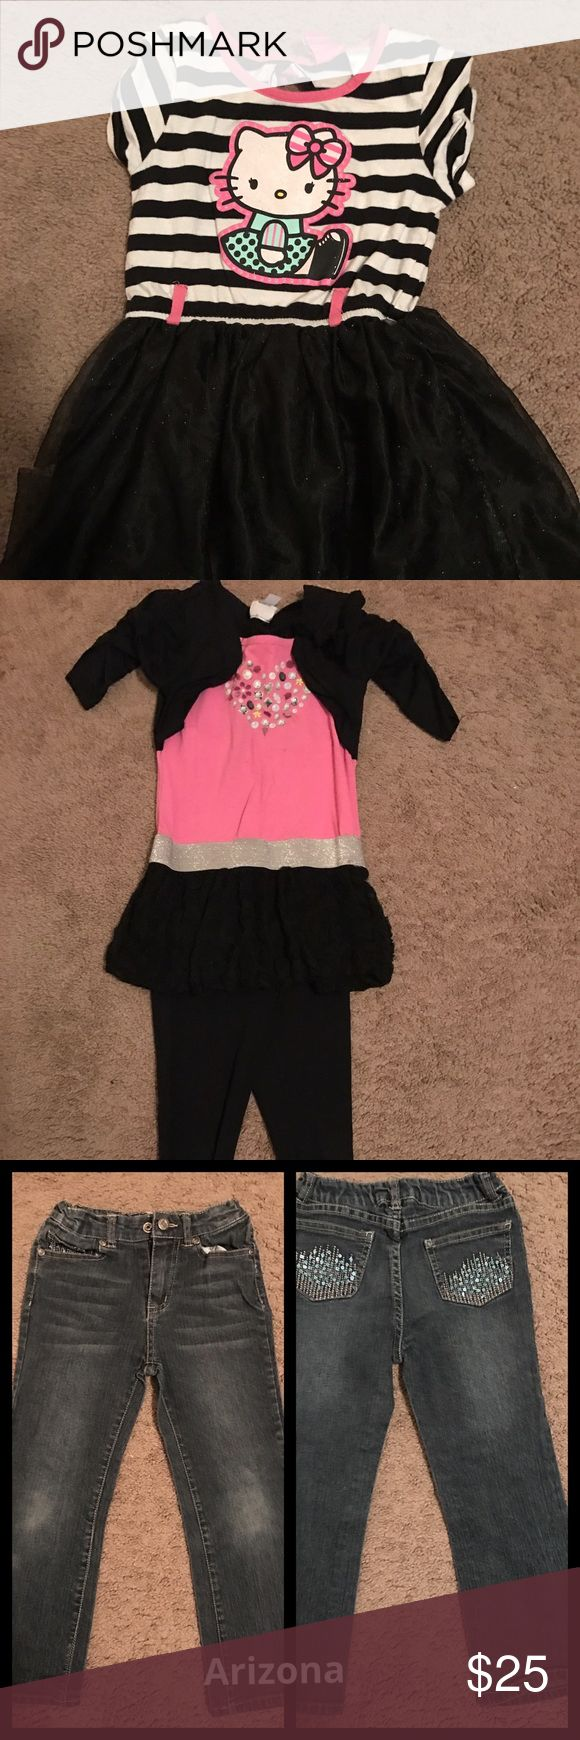 Girls 8 Piece bundle size 6/6x This bundle includes: 1 Hello Kitty Tutu dress 1 piper 2 Piece black and pink heart outfit 1 pair of Arizona jeans 1 Purple Heart T-shirt 1 Disney Resorts T-shirt 1 Hello Kitty shirt 1 pair of Frozen leggings   All items are size 6/6x. I did not see any stains or holes. They come from a smoke free and pet free home. Other